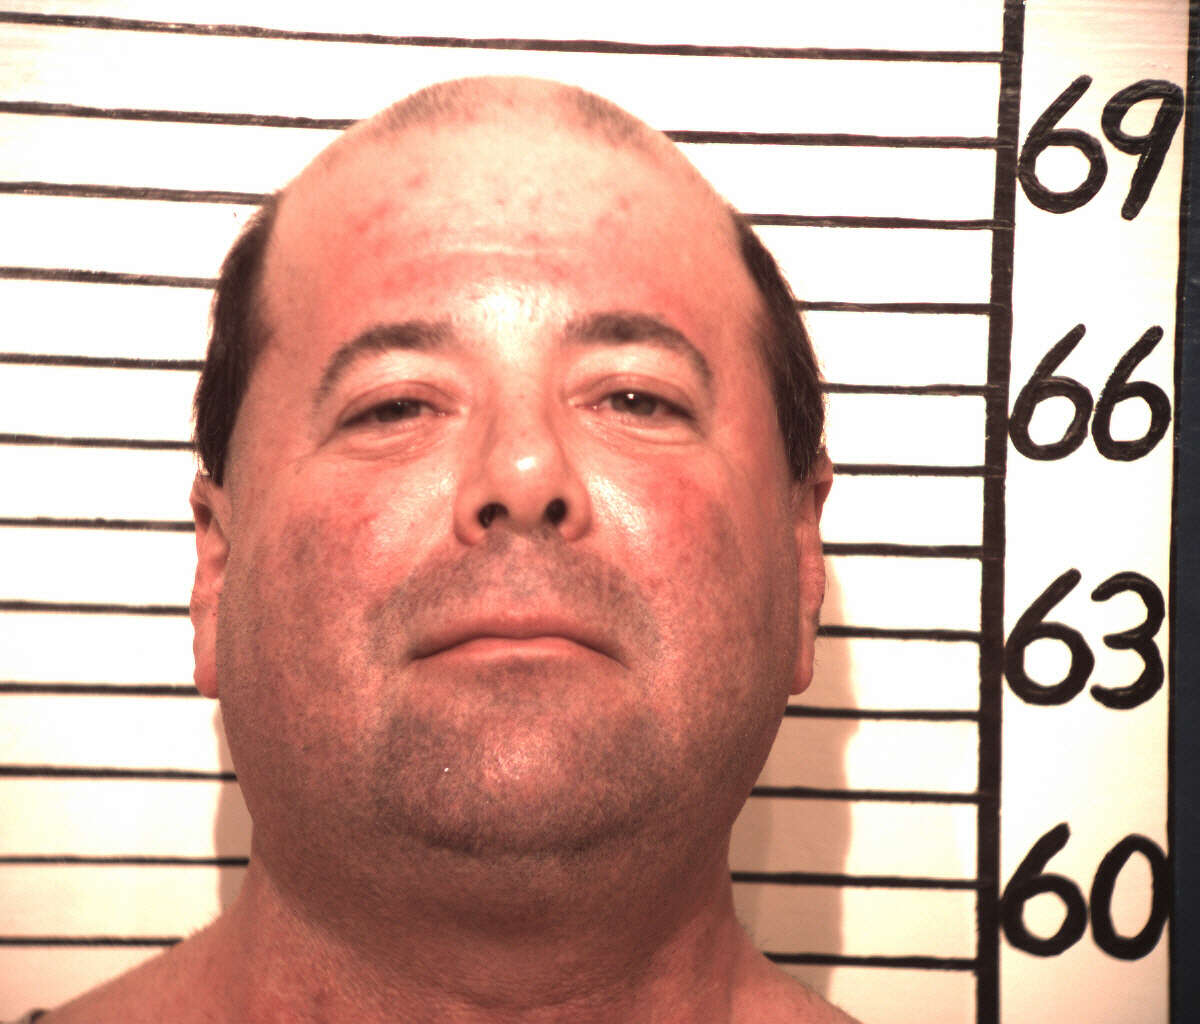 Nicholas George Koclanes, seen in an Aug. 6, 2013 booking mug provided Aug. 7, 2013 by the Comal County Sheriff's Department, was charged with the murder of his brother Ted Koclanes.